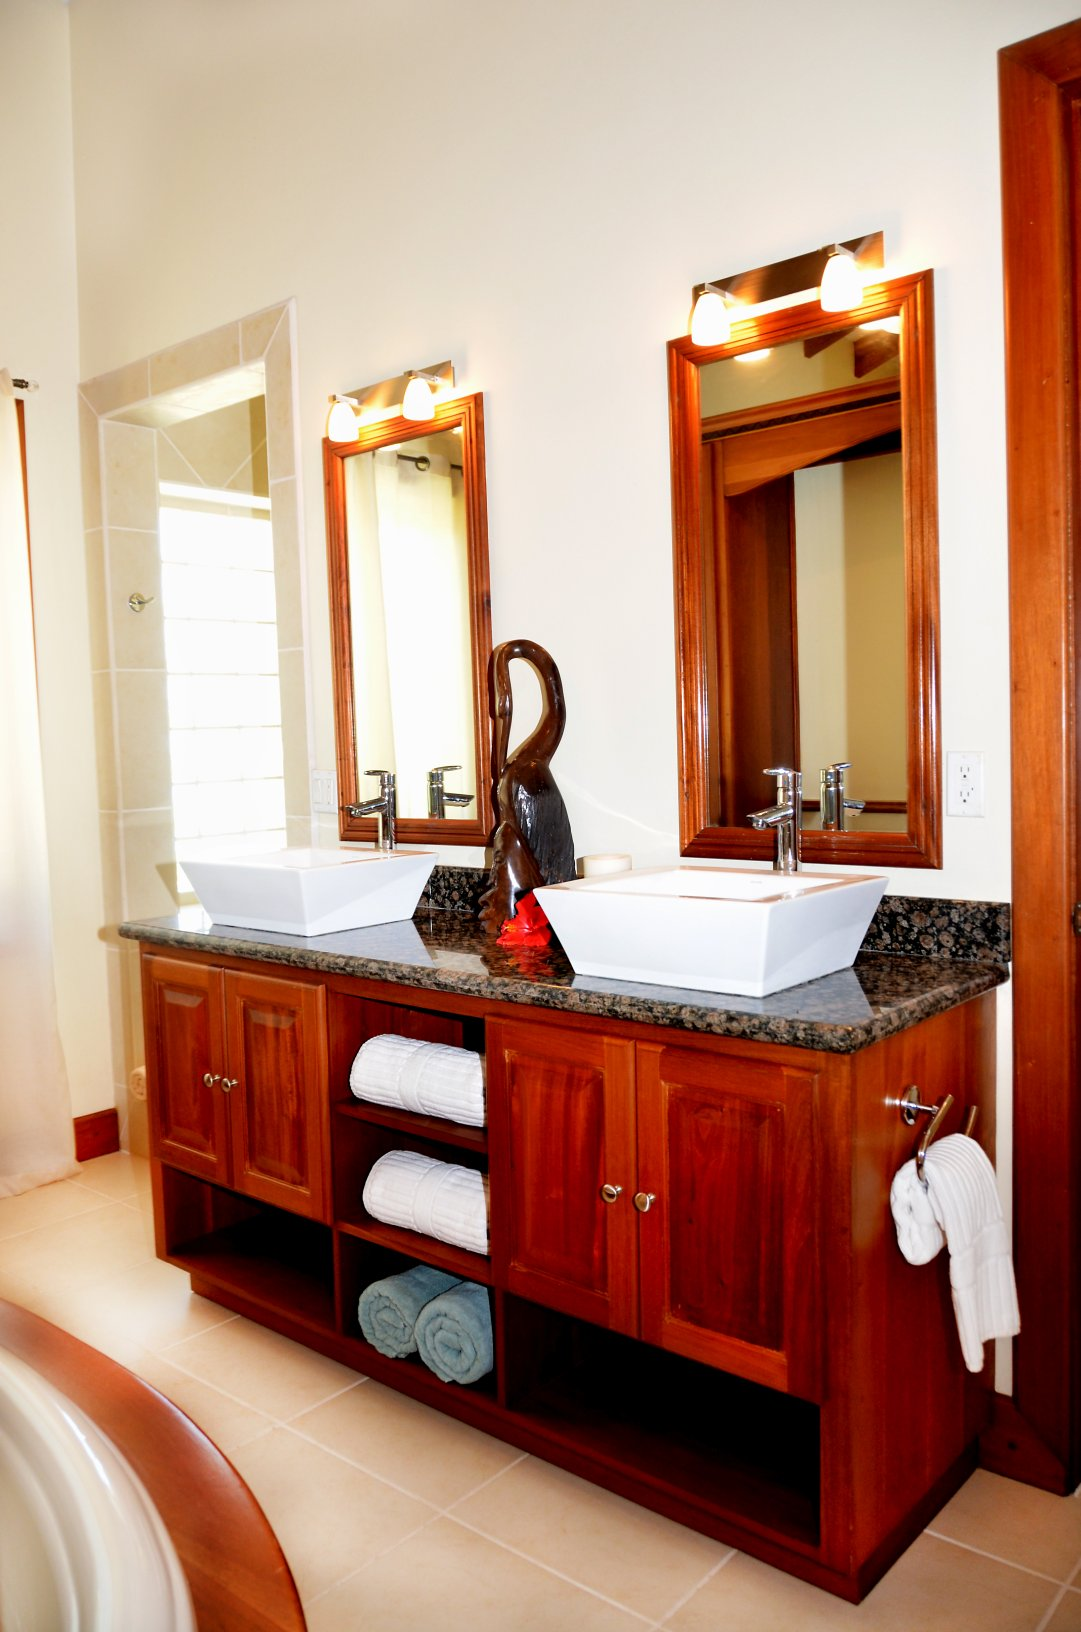 2 bedroom penthouse 231 pelican the villas at cocoplum Maximum occupancy for 2 bedroom apartment